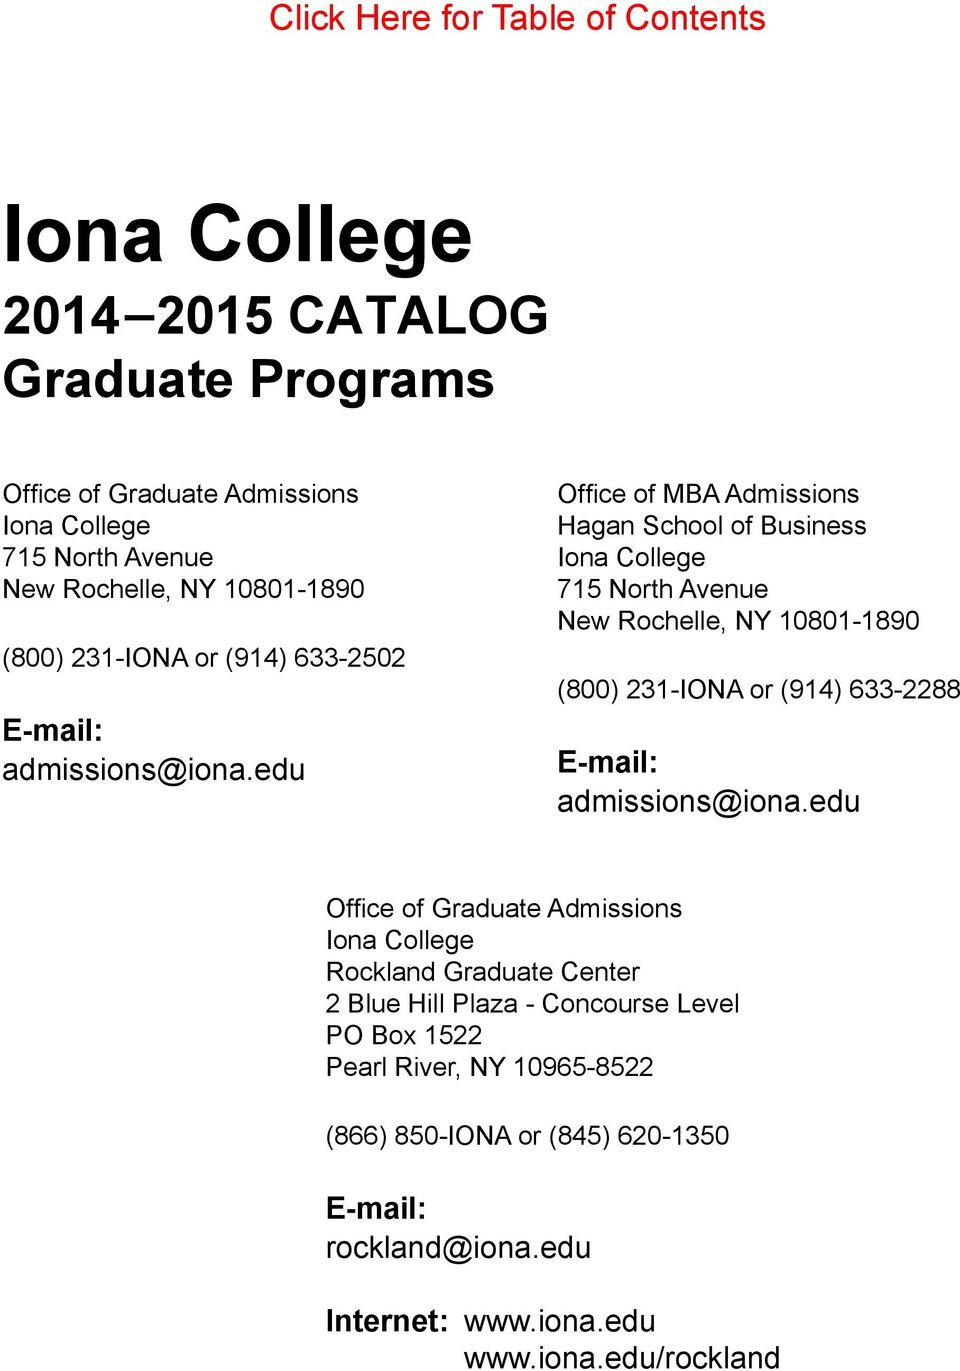 edu Office of MBA Admissions Hagan School of Business Iona College 715 North Avenue New Rochelle, NY 10801-1890 (800) 231-IONA or (914) 633-2288 E-mail: admissions@iona.